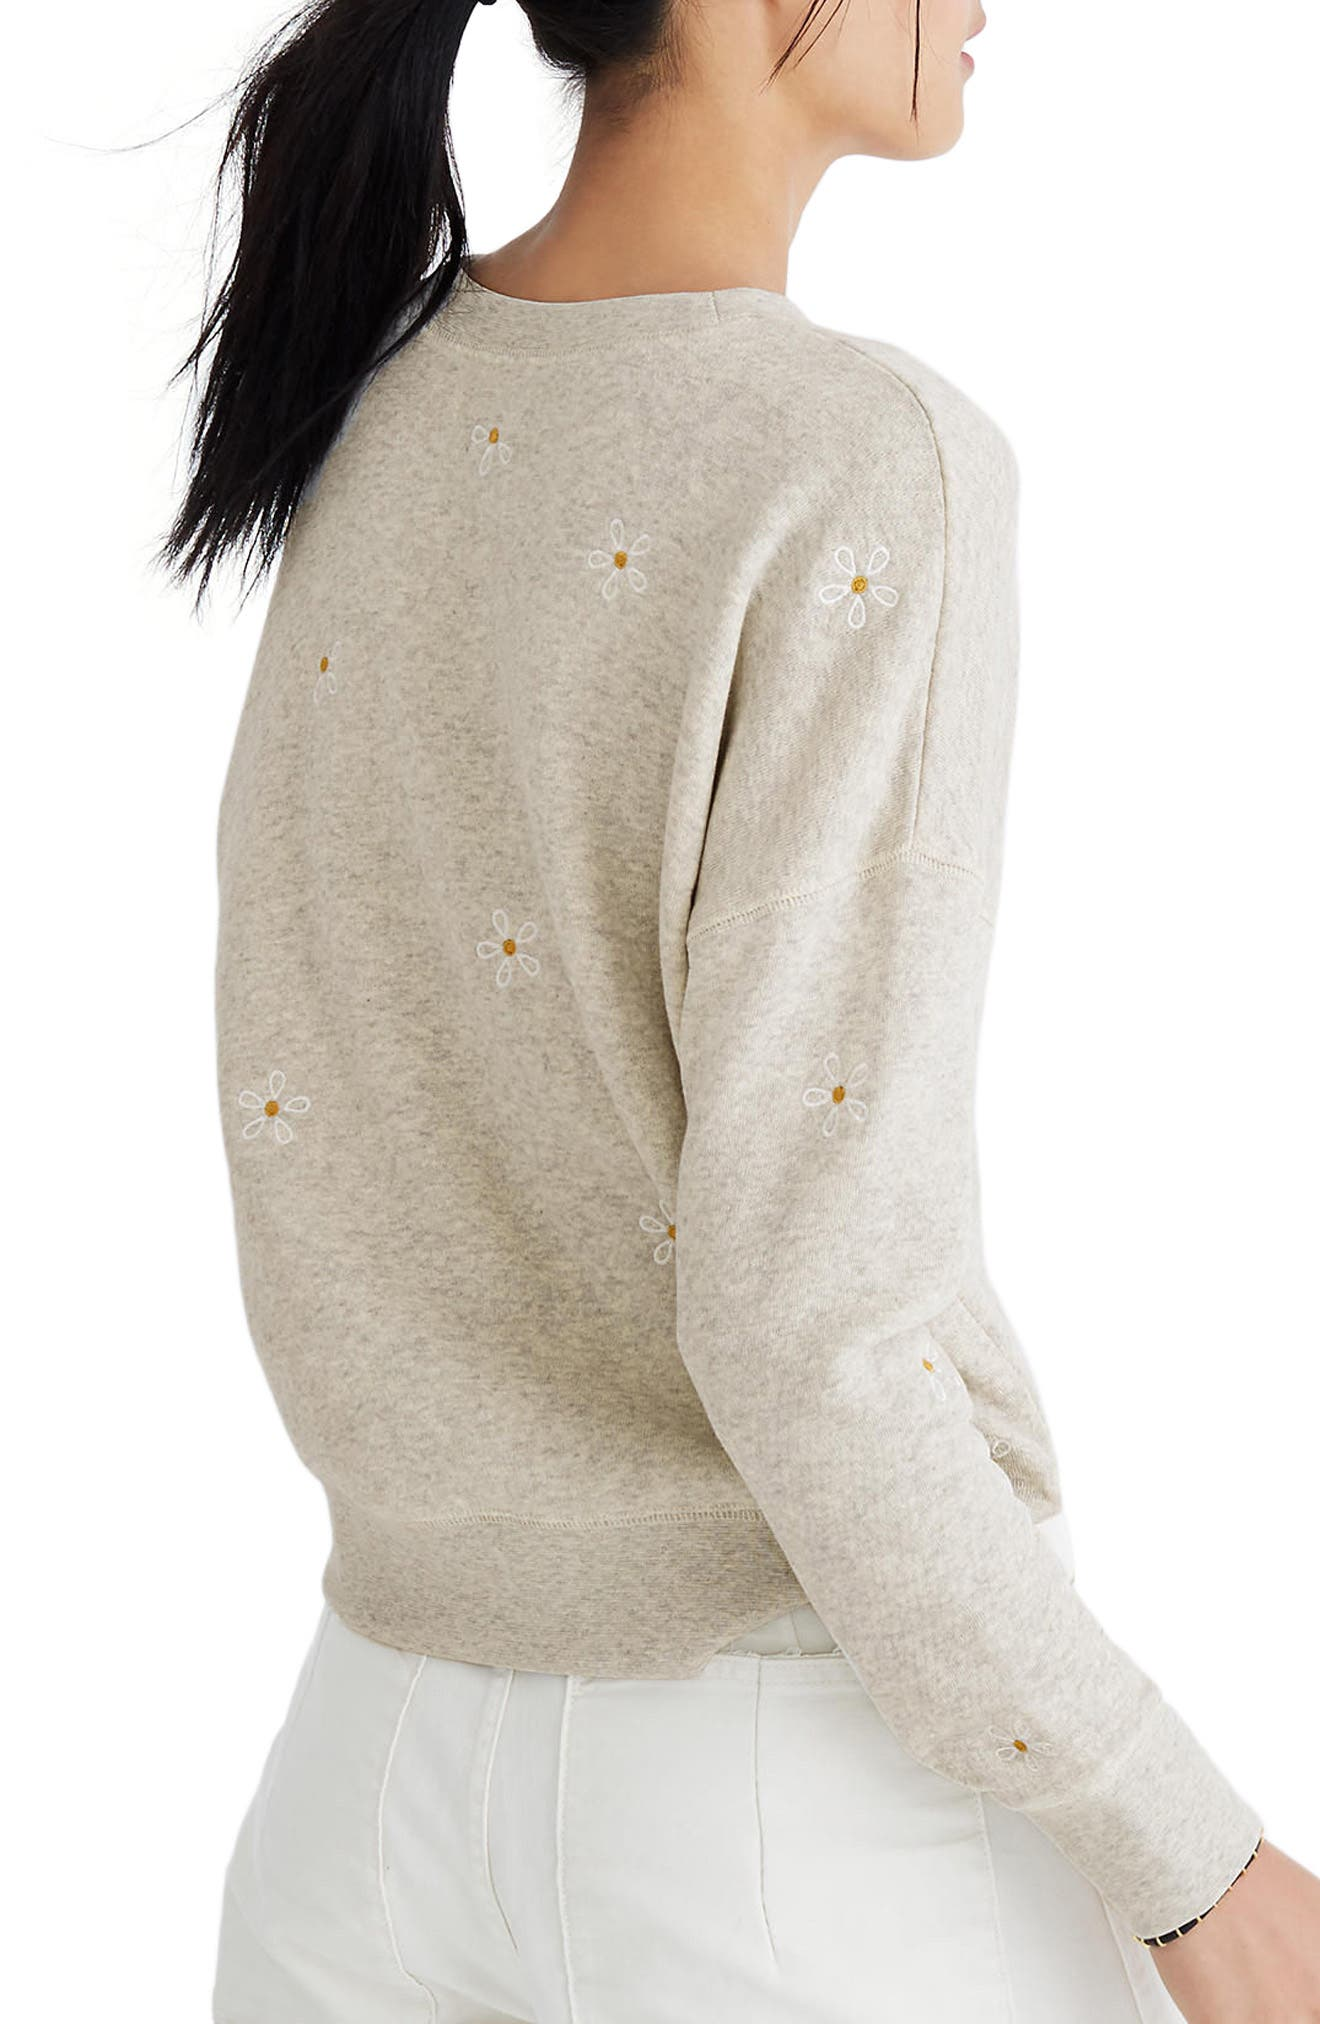 Daisy Embroidered Sweatshirt,                             Alternate thumbnail 2, color,                             020